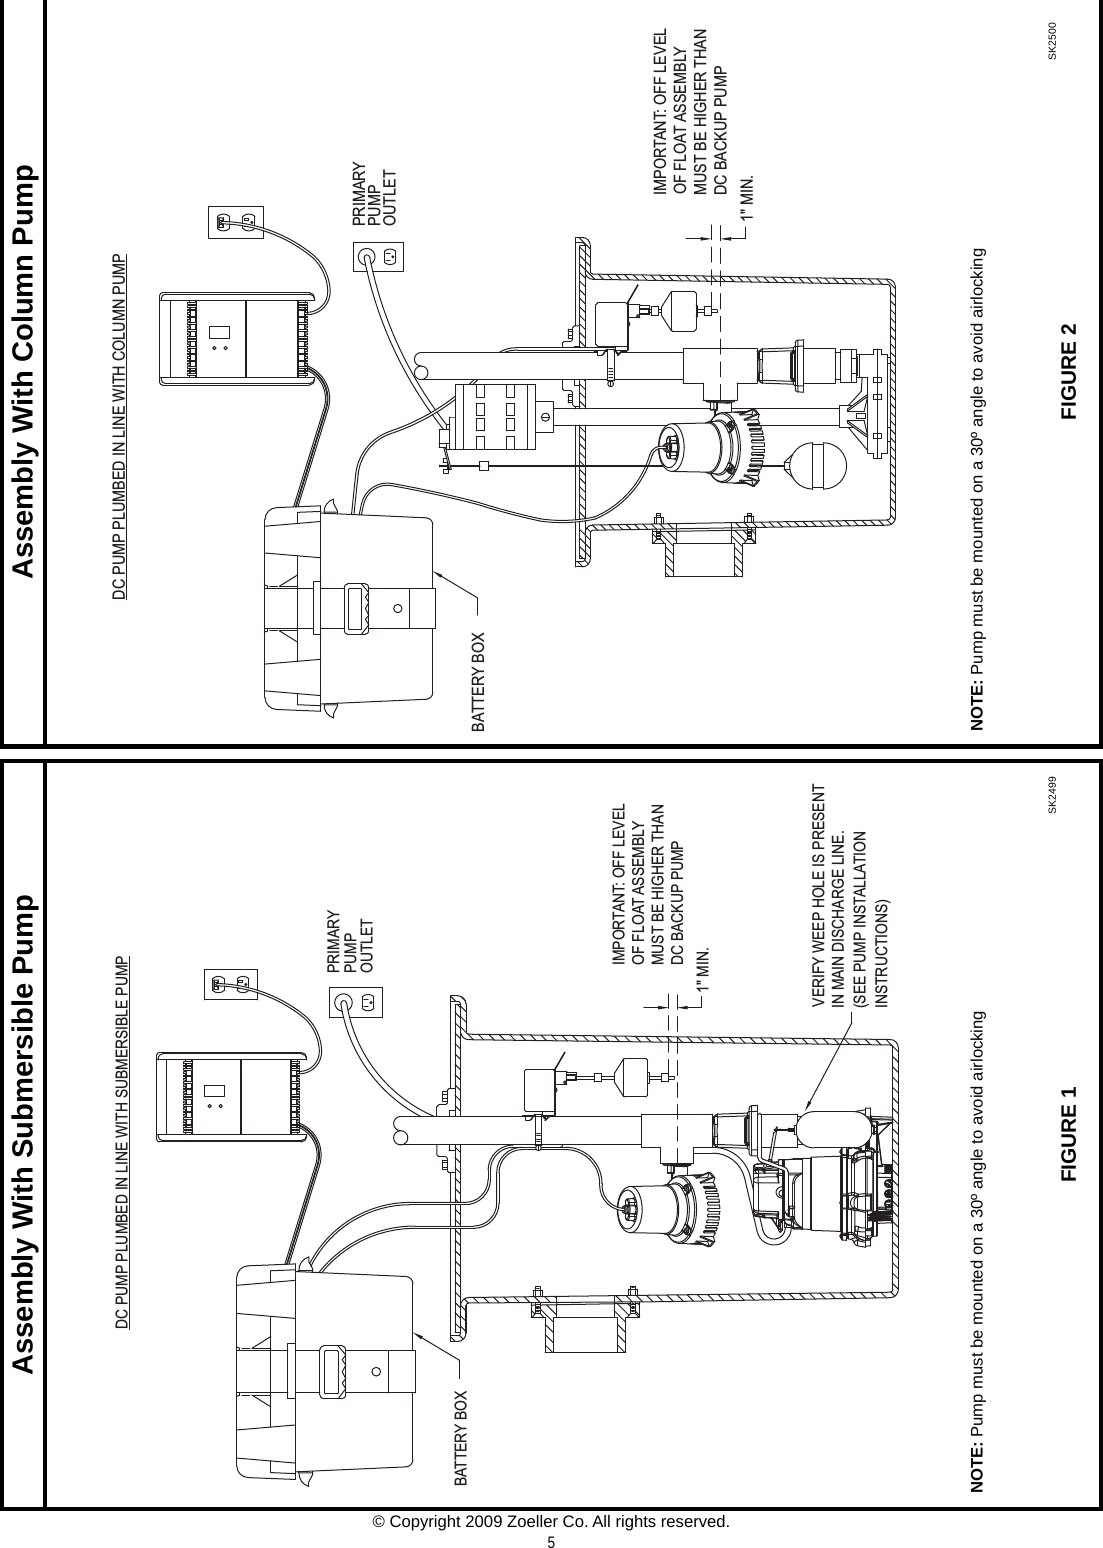 537026 1 Zoeller 507 Basement Sentry System Installation Manual Submersible Pump Wiring Diagram Page 5 Of 8 Fm1311